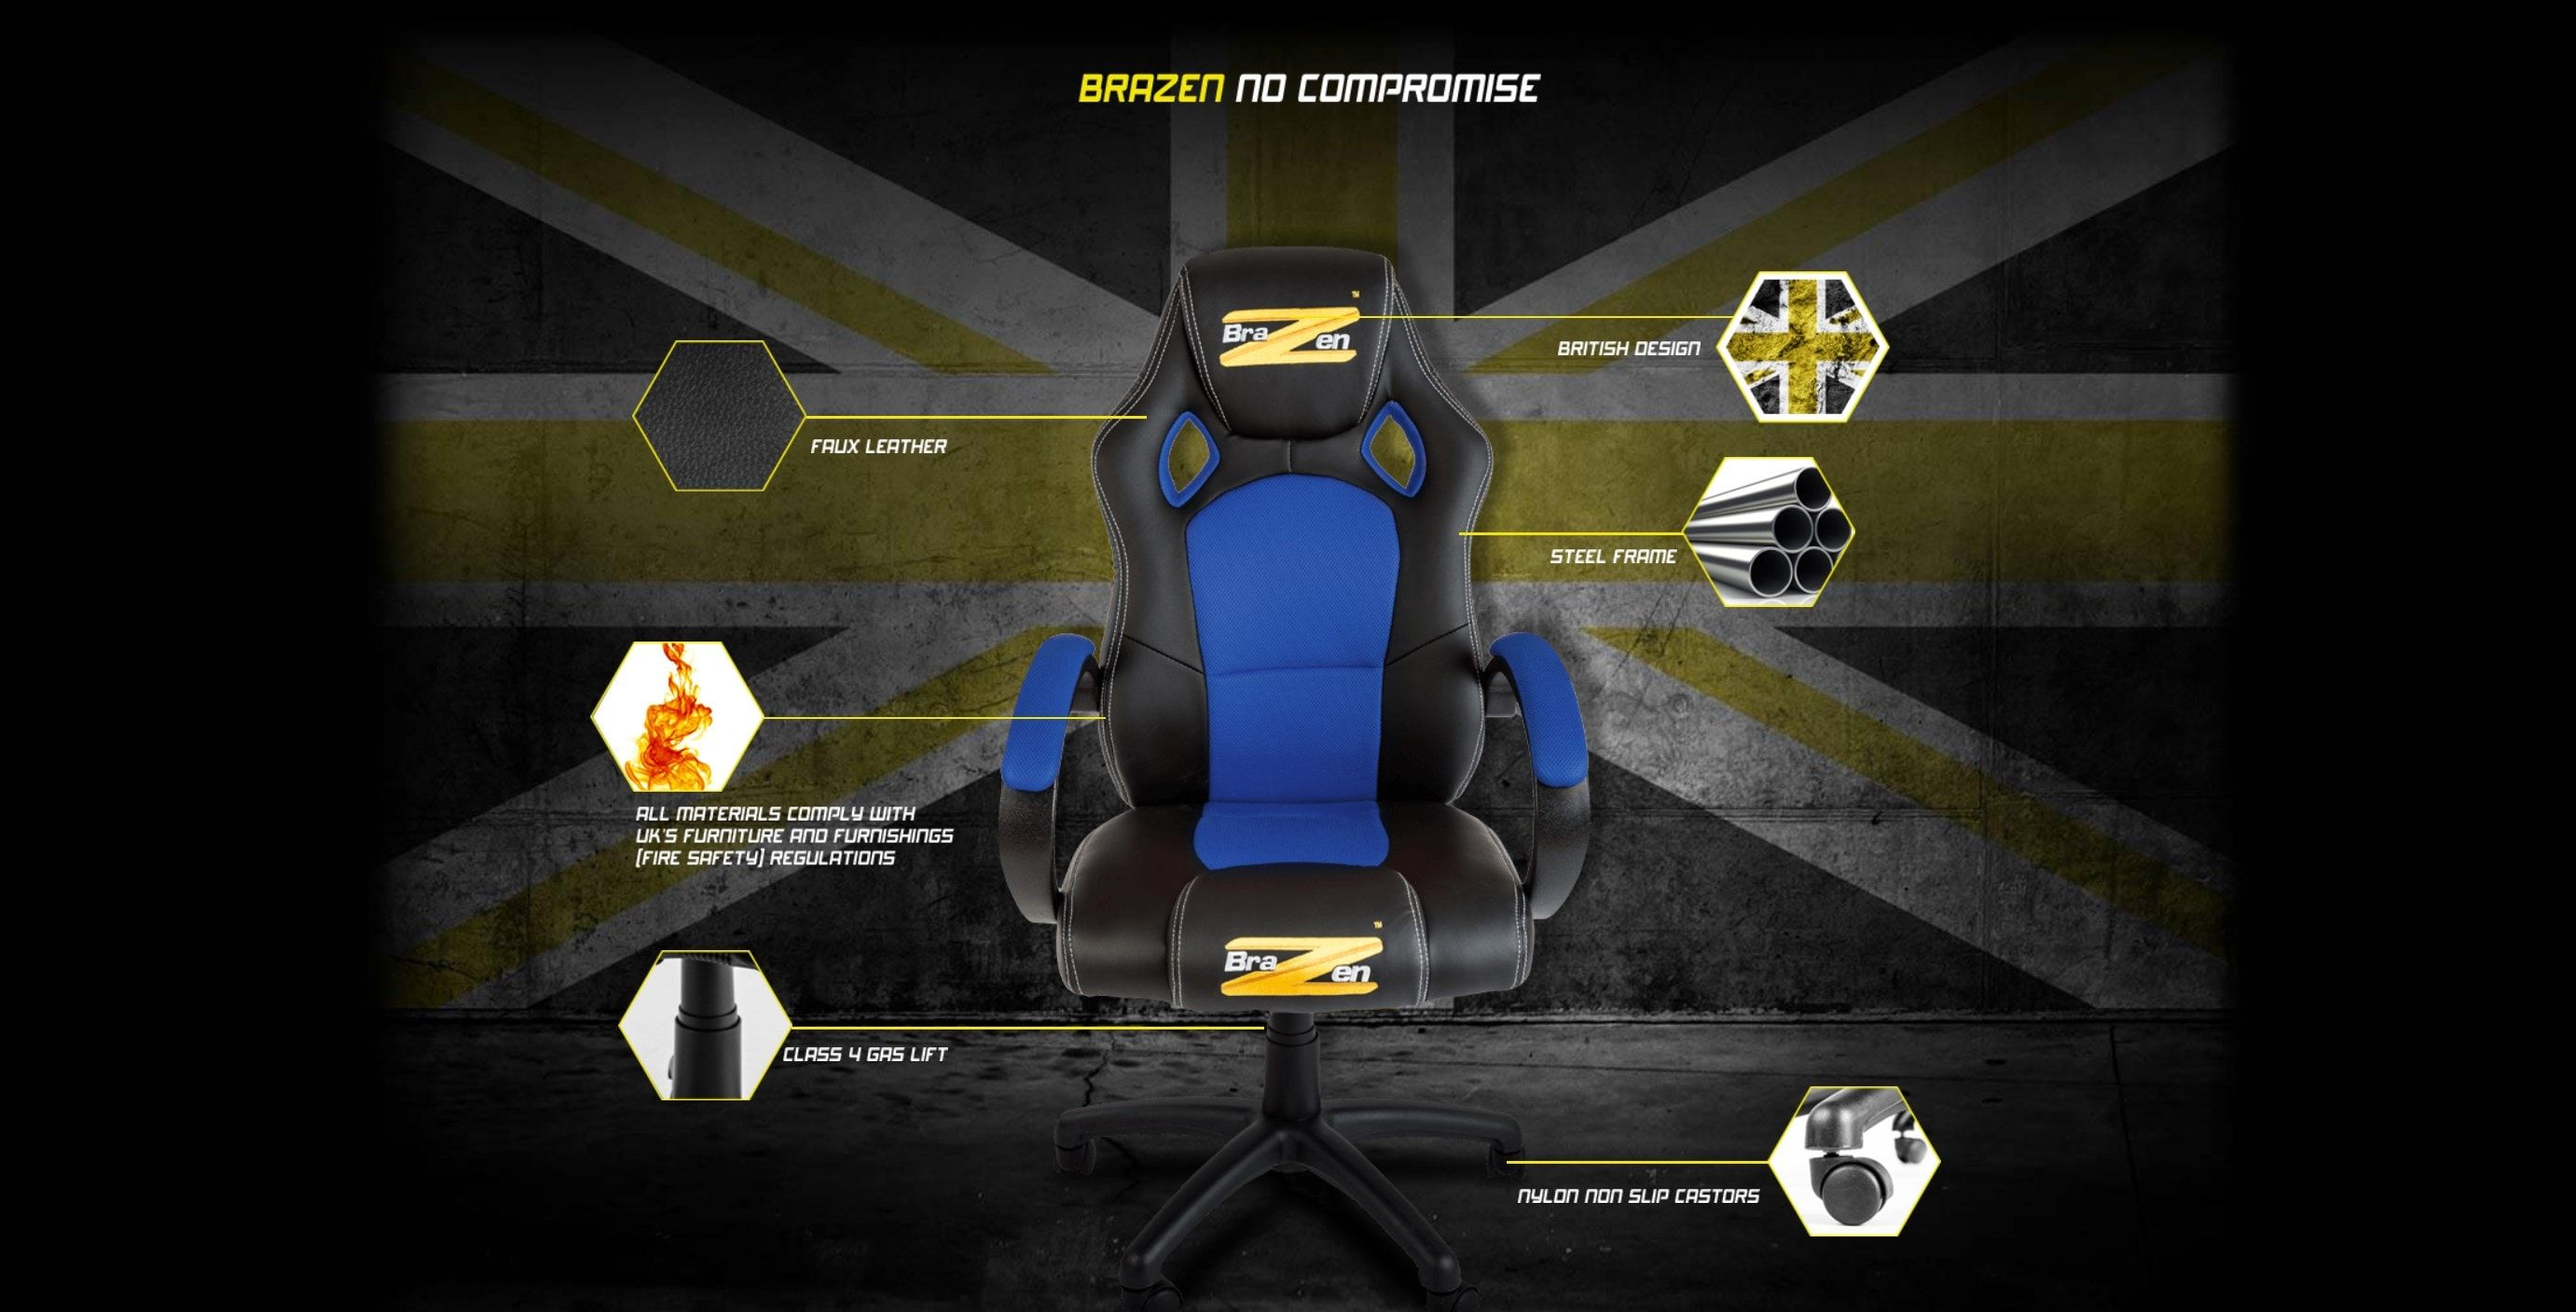 Miraculous Brazen Puma Pc Gaming Chair Review An Affordable Spiritservingveterans Wood Chair Design Ideas Spiritservingveteransorg